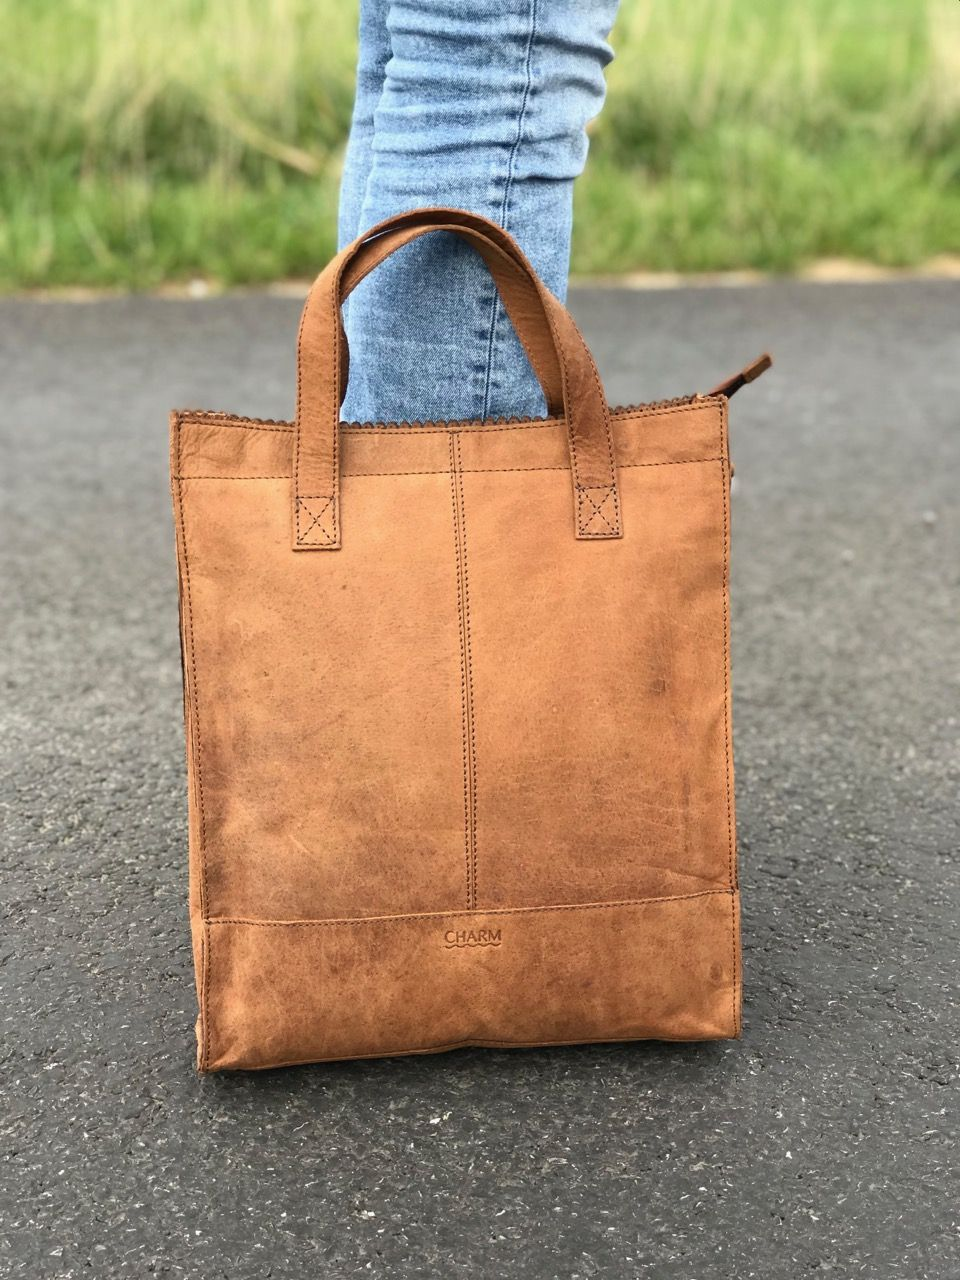 3a6eabf3d78 Charm Leather Tote Bag Bruin Prachtige design Tote Bag van Charm Leather  van mooi rundleer.